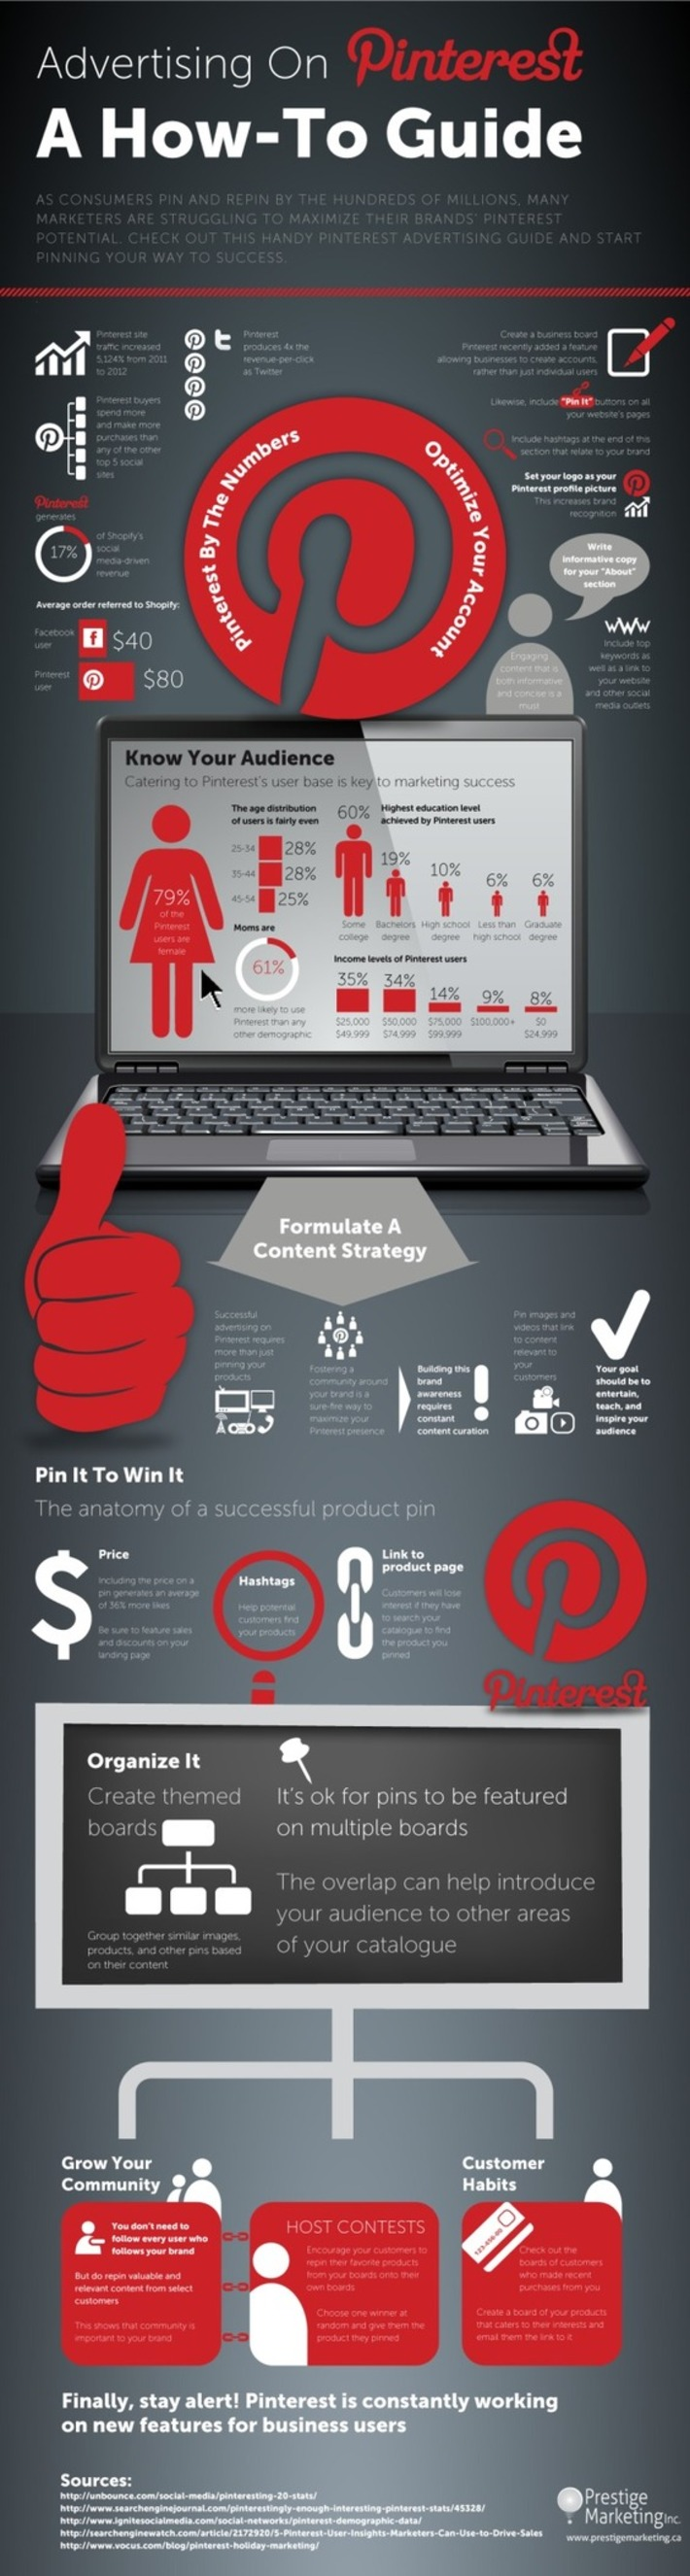 Infographic: Pinterest requires constant content curation | A Marketing Mix | Scoop.it